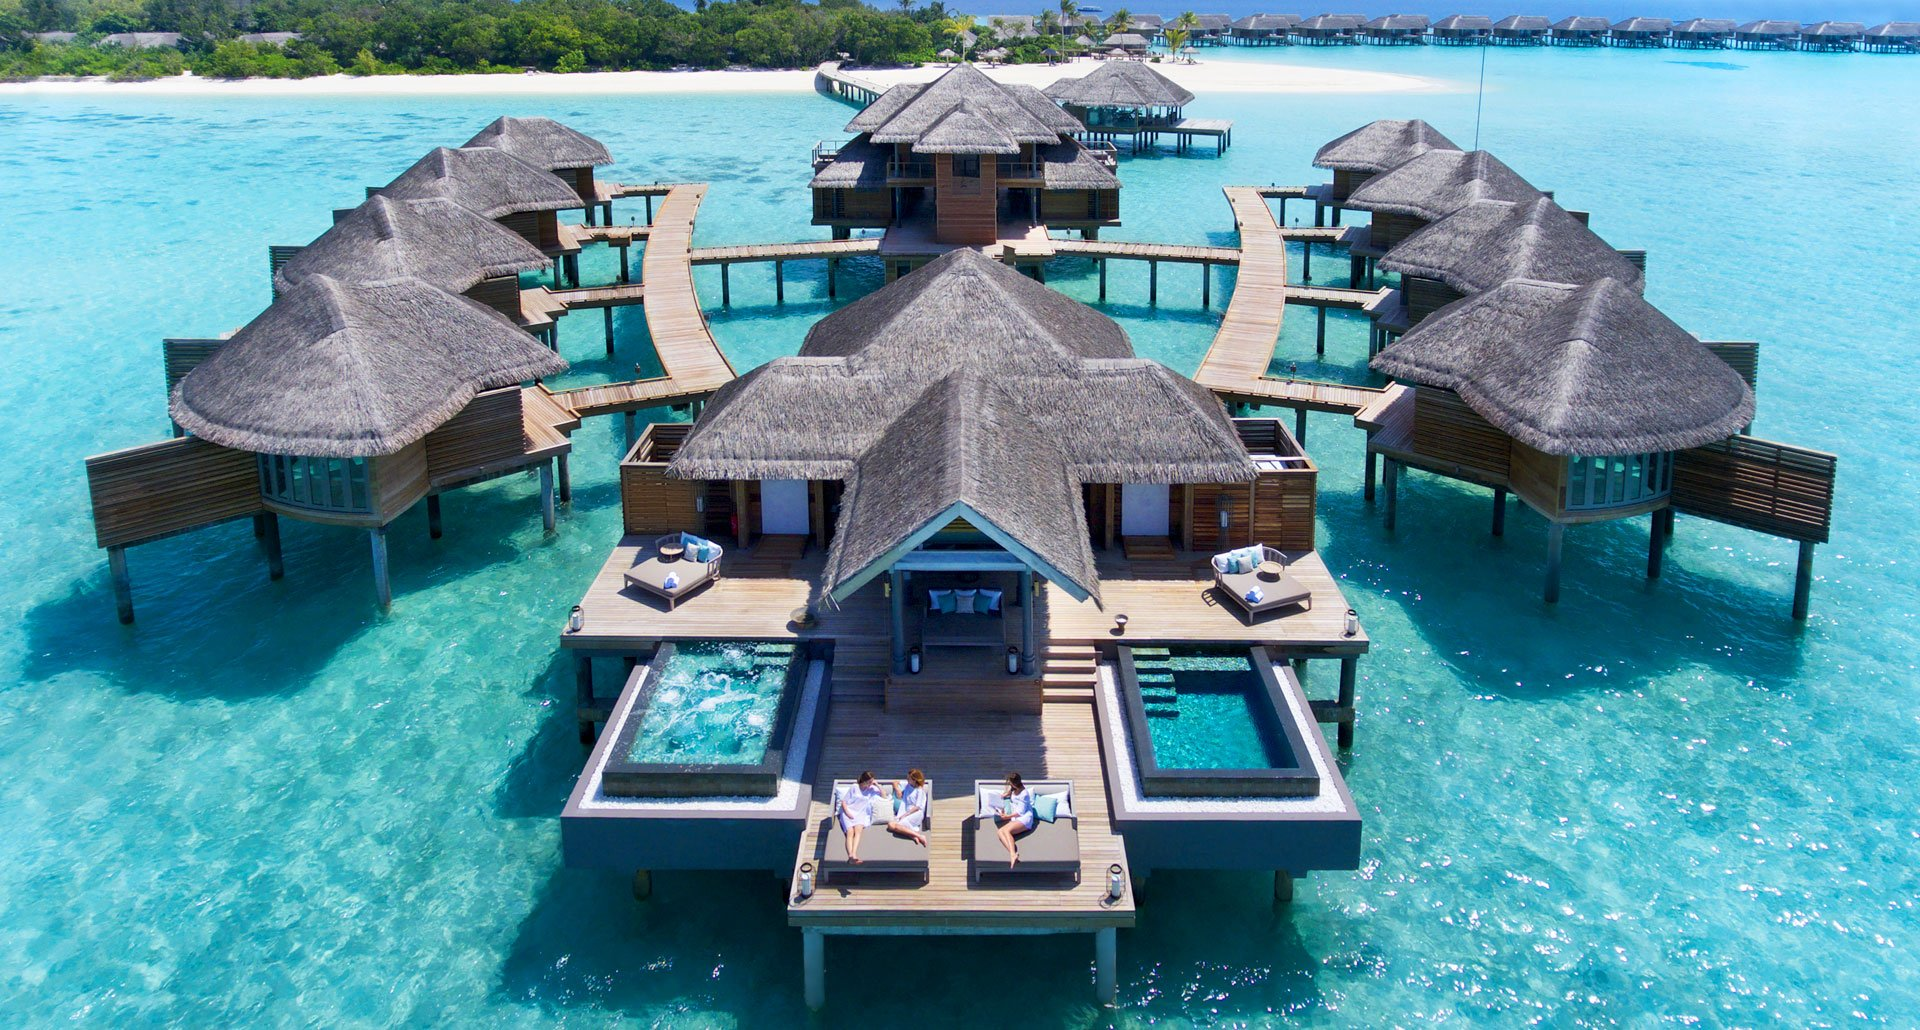 What about quarantine in an overwater bungalow in Maldives?